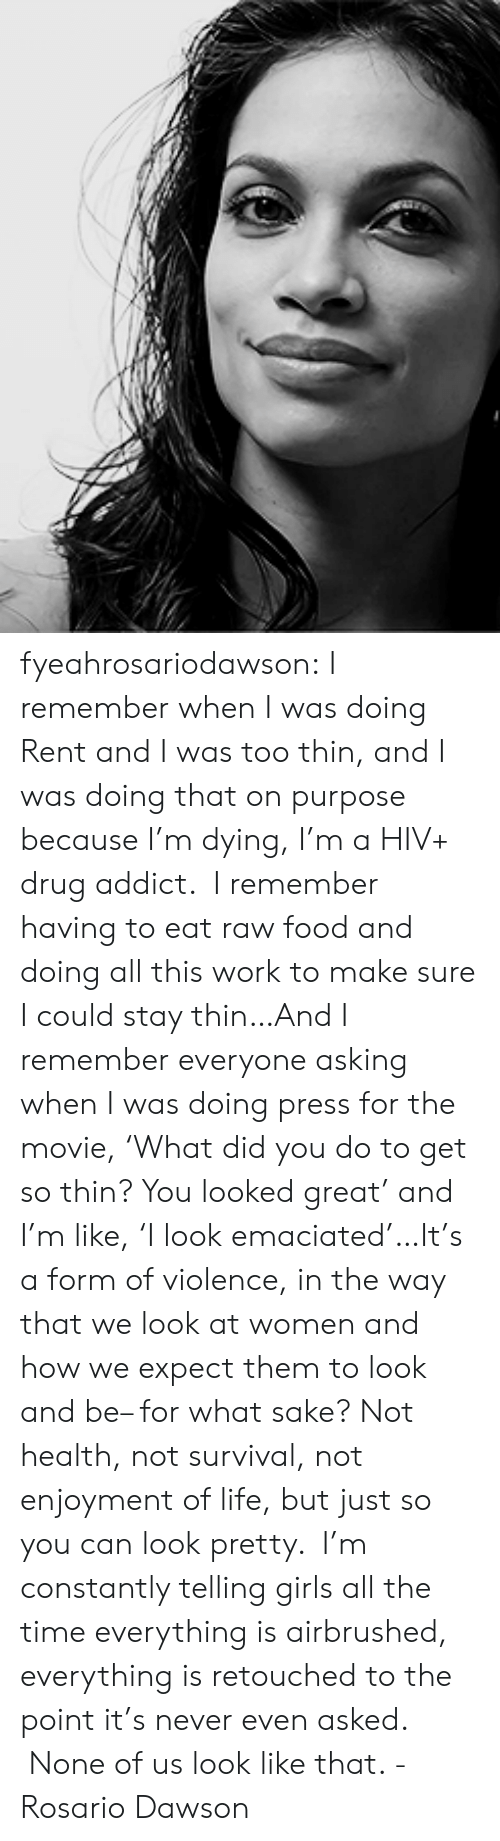 drug addict: fyeahrosariodawson:  I remember when I was doing Rent and I was too thin, and I was doing that on purpose because I'm dying, I'm a HIV+ drug addict.  I remember having to eat raw food and doing all this work to make sure I could stay thin…And I remember everyone asking when I was doing press for the movie, 'What did you do to get so thin? You looked great' and I'm like, 'I look emaciated'…It's a form of violence, in the way that we look at women and how we expect them to look and be– for what sake? Not health, not survival, not enjoyment of life, but just so you can look pretty.  I'm constantly telling girls all the time everything is airbrushed, everything is retouched to the point it's never even asked.  None of us look like that. - Rosario Dawson